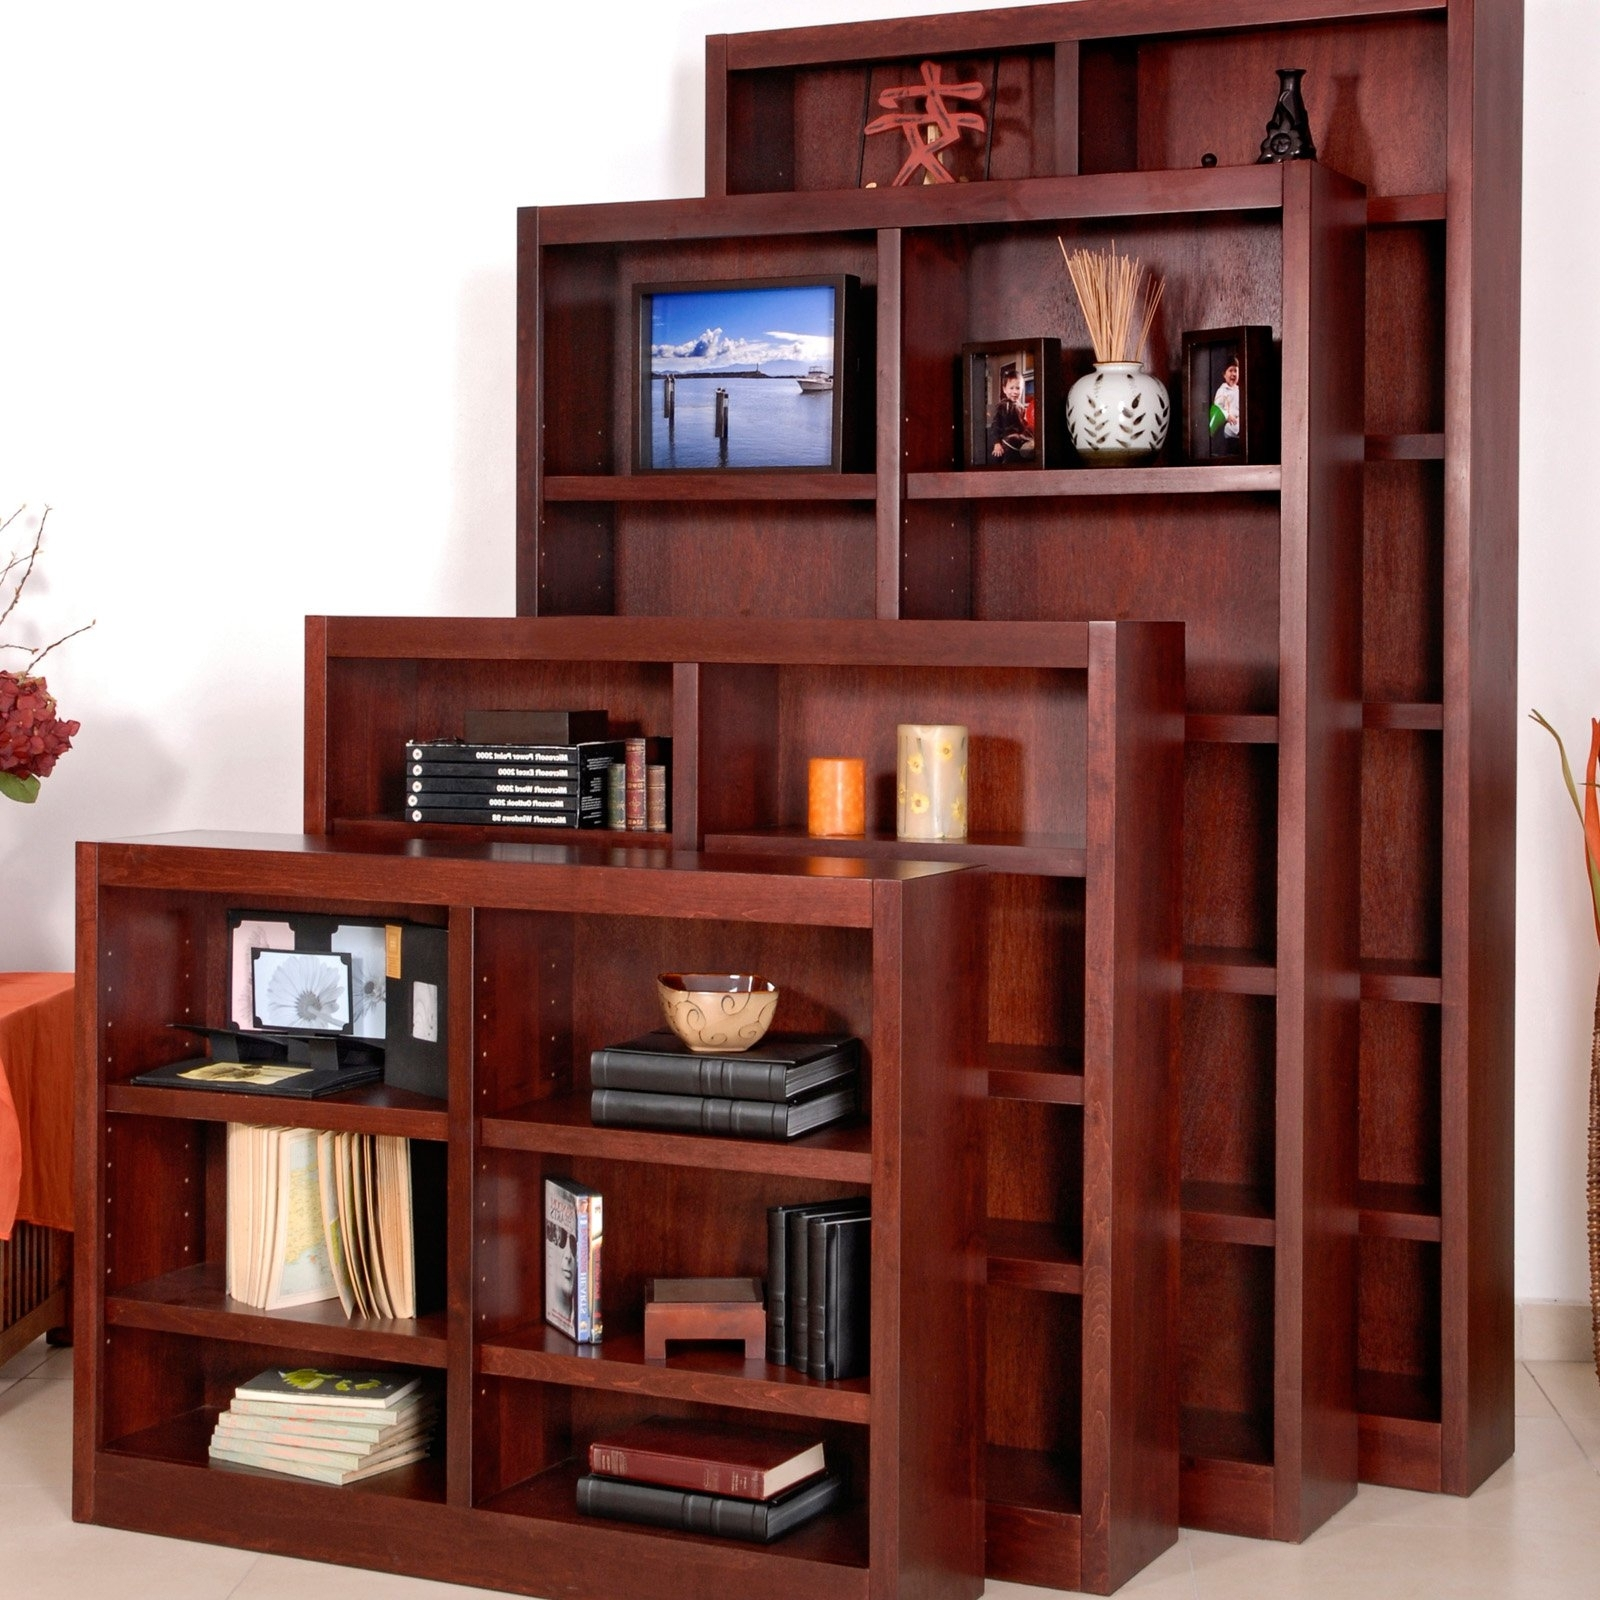 Cherry Bookcases For Widely Used Remmington Heavy Duty Bookcase – Cherry (View 1 of 15)